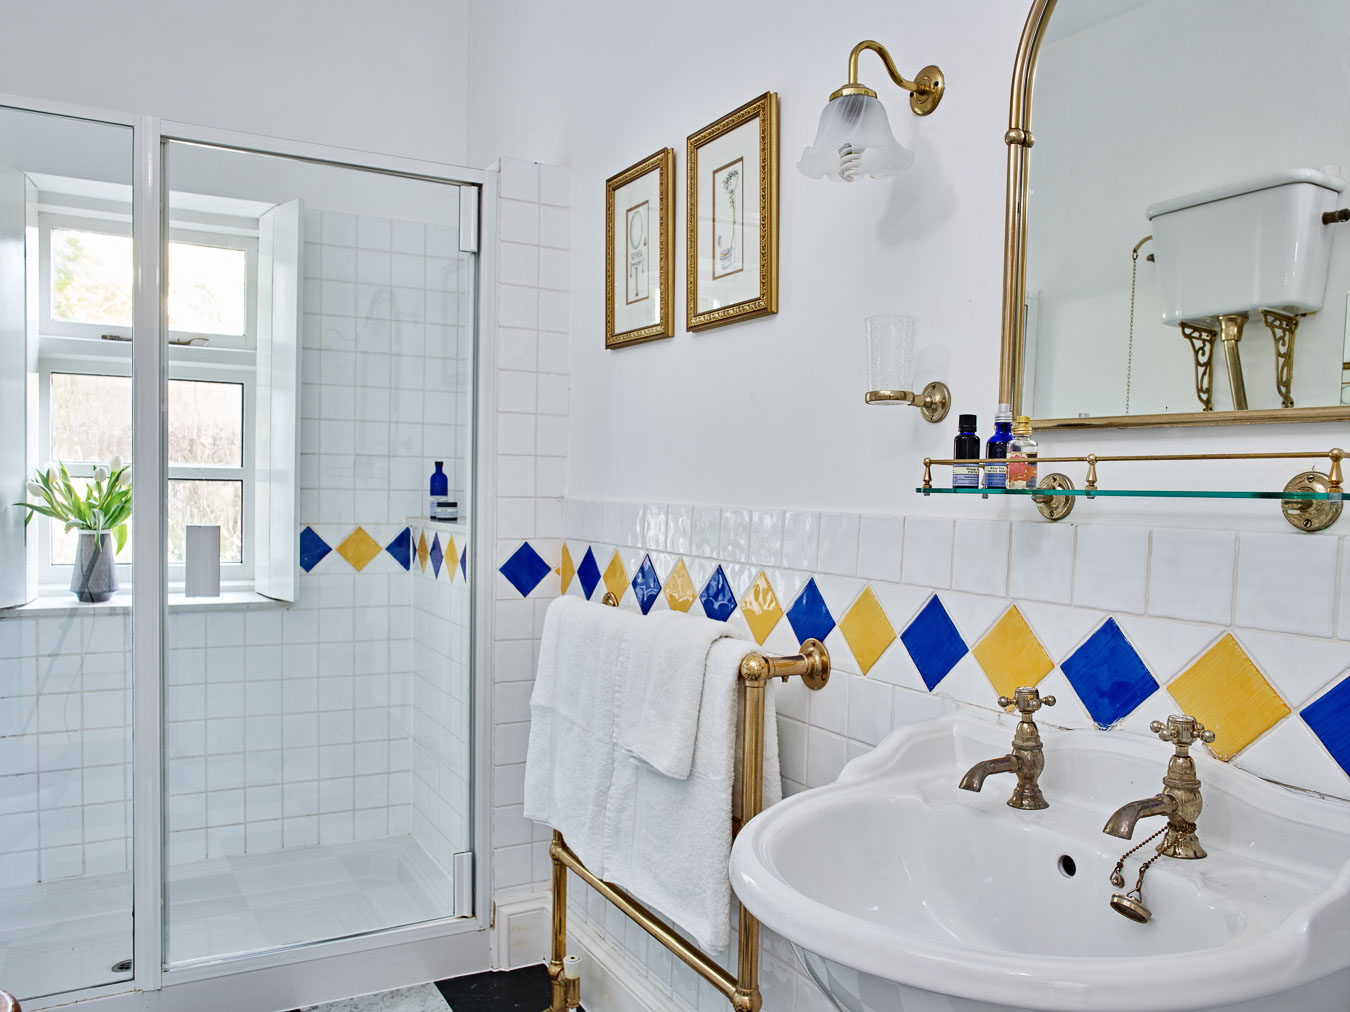 The near by bathroom that serves the twin rooms in Flear House. It has gold accessories and a fun Harlequin tile on the wall's and floor.